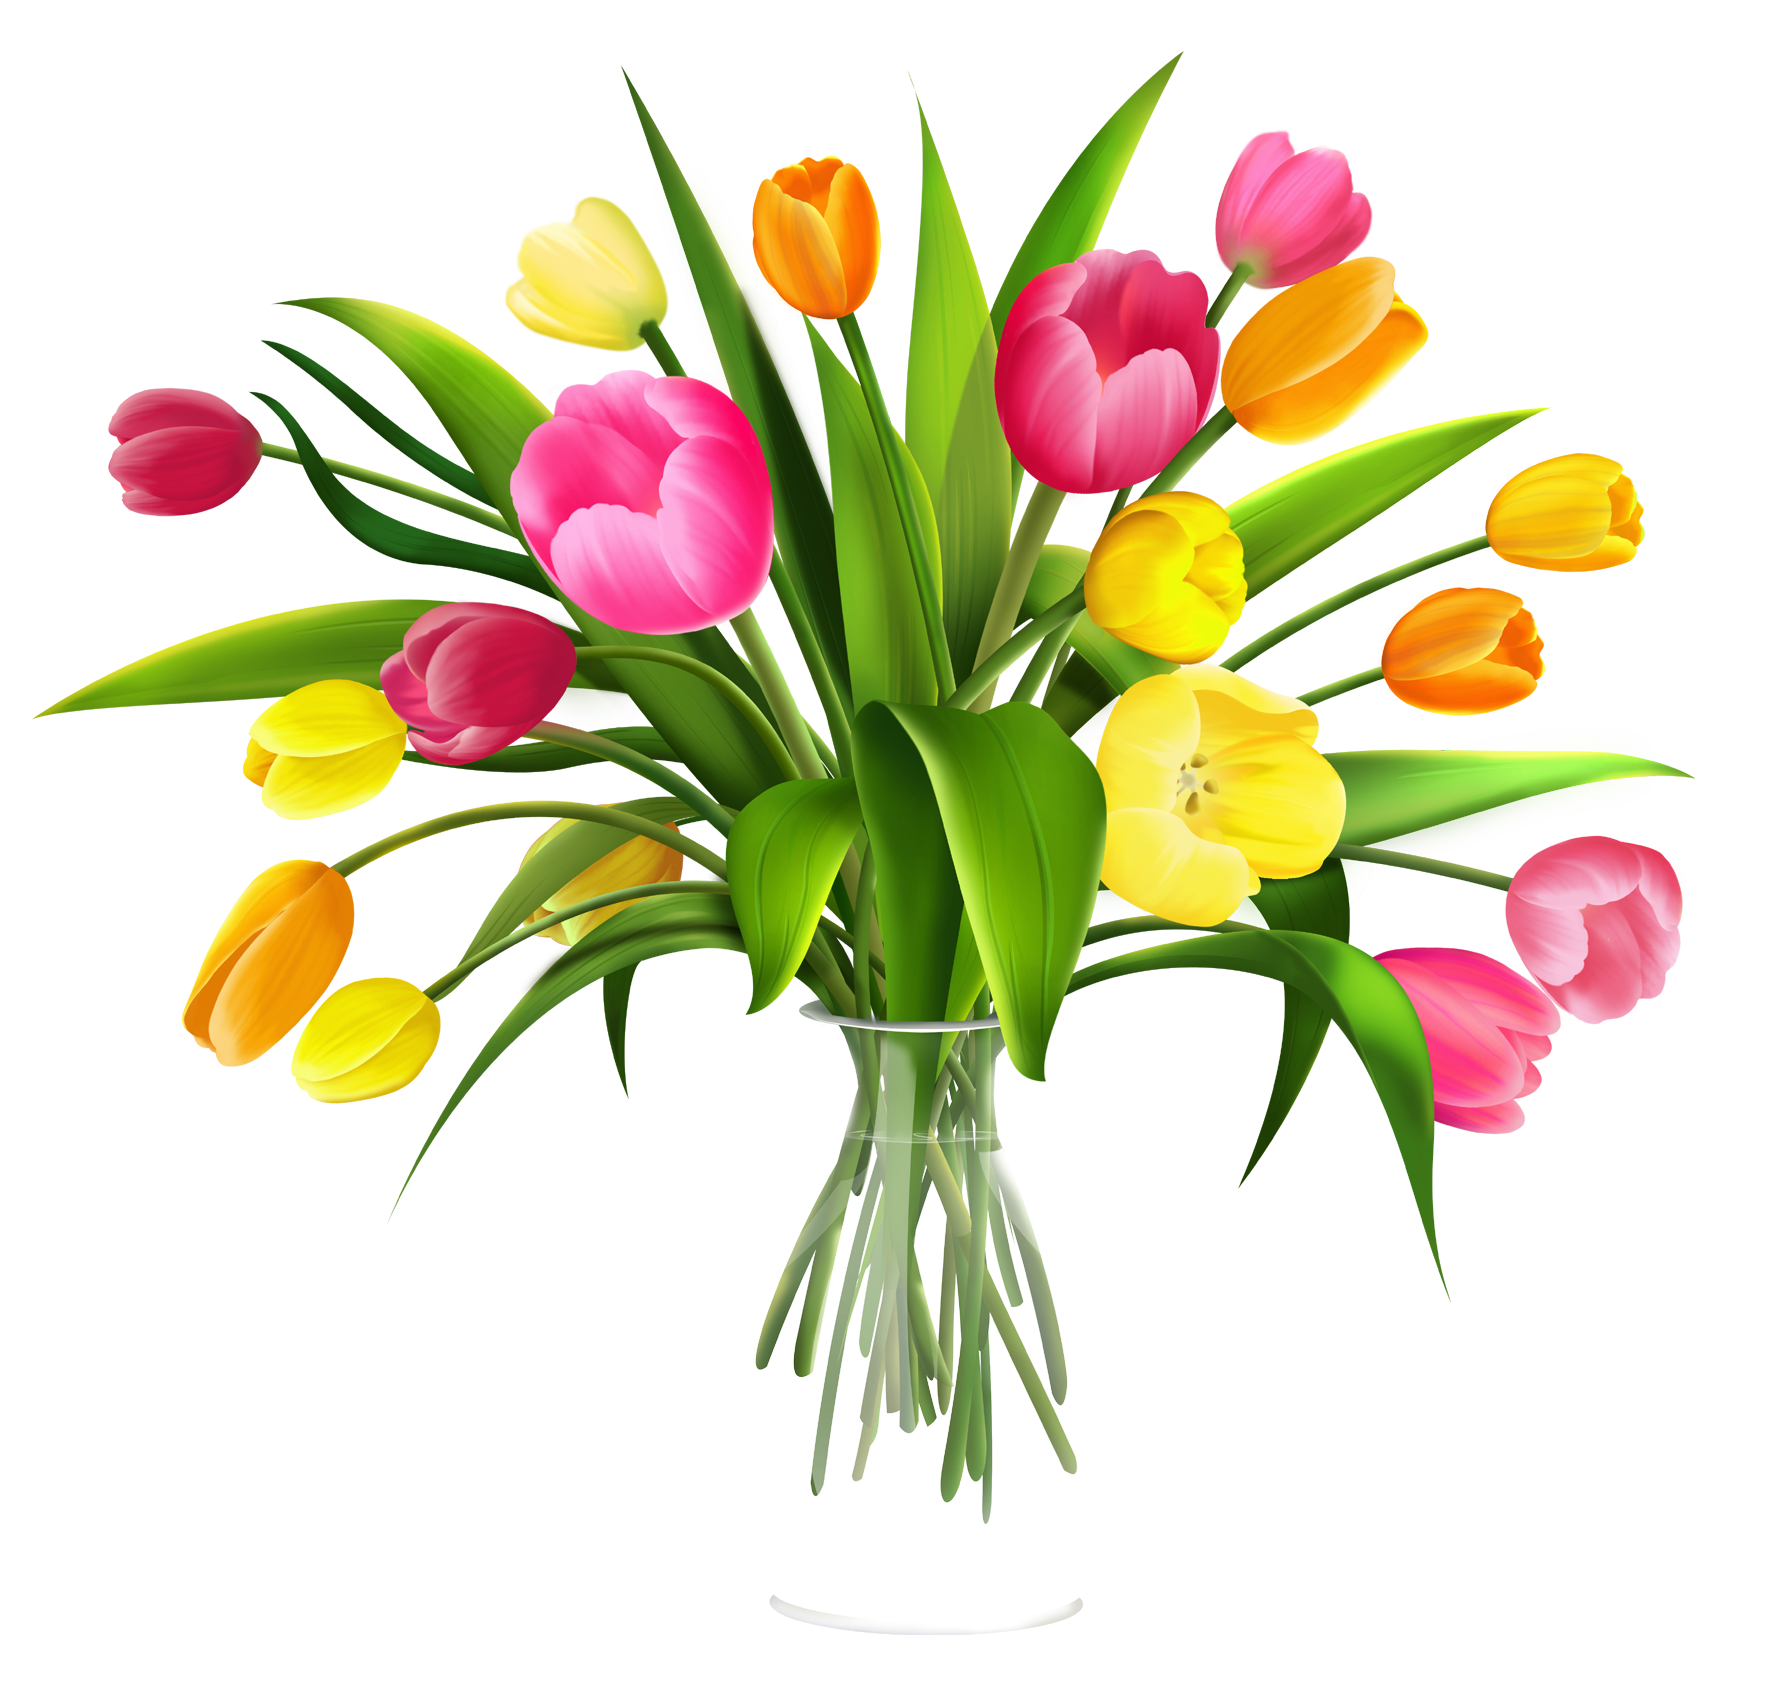 graphic royalty free download Free Clip Art Flowers in Vase